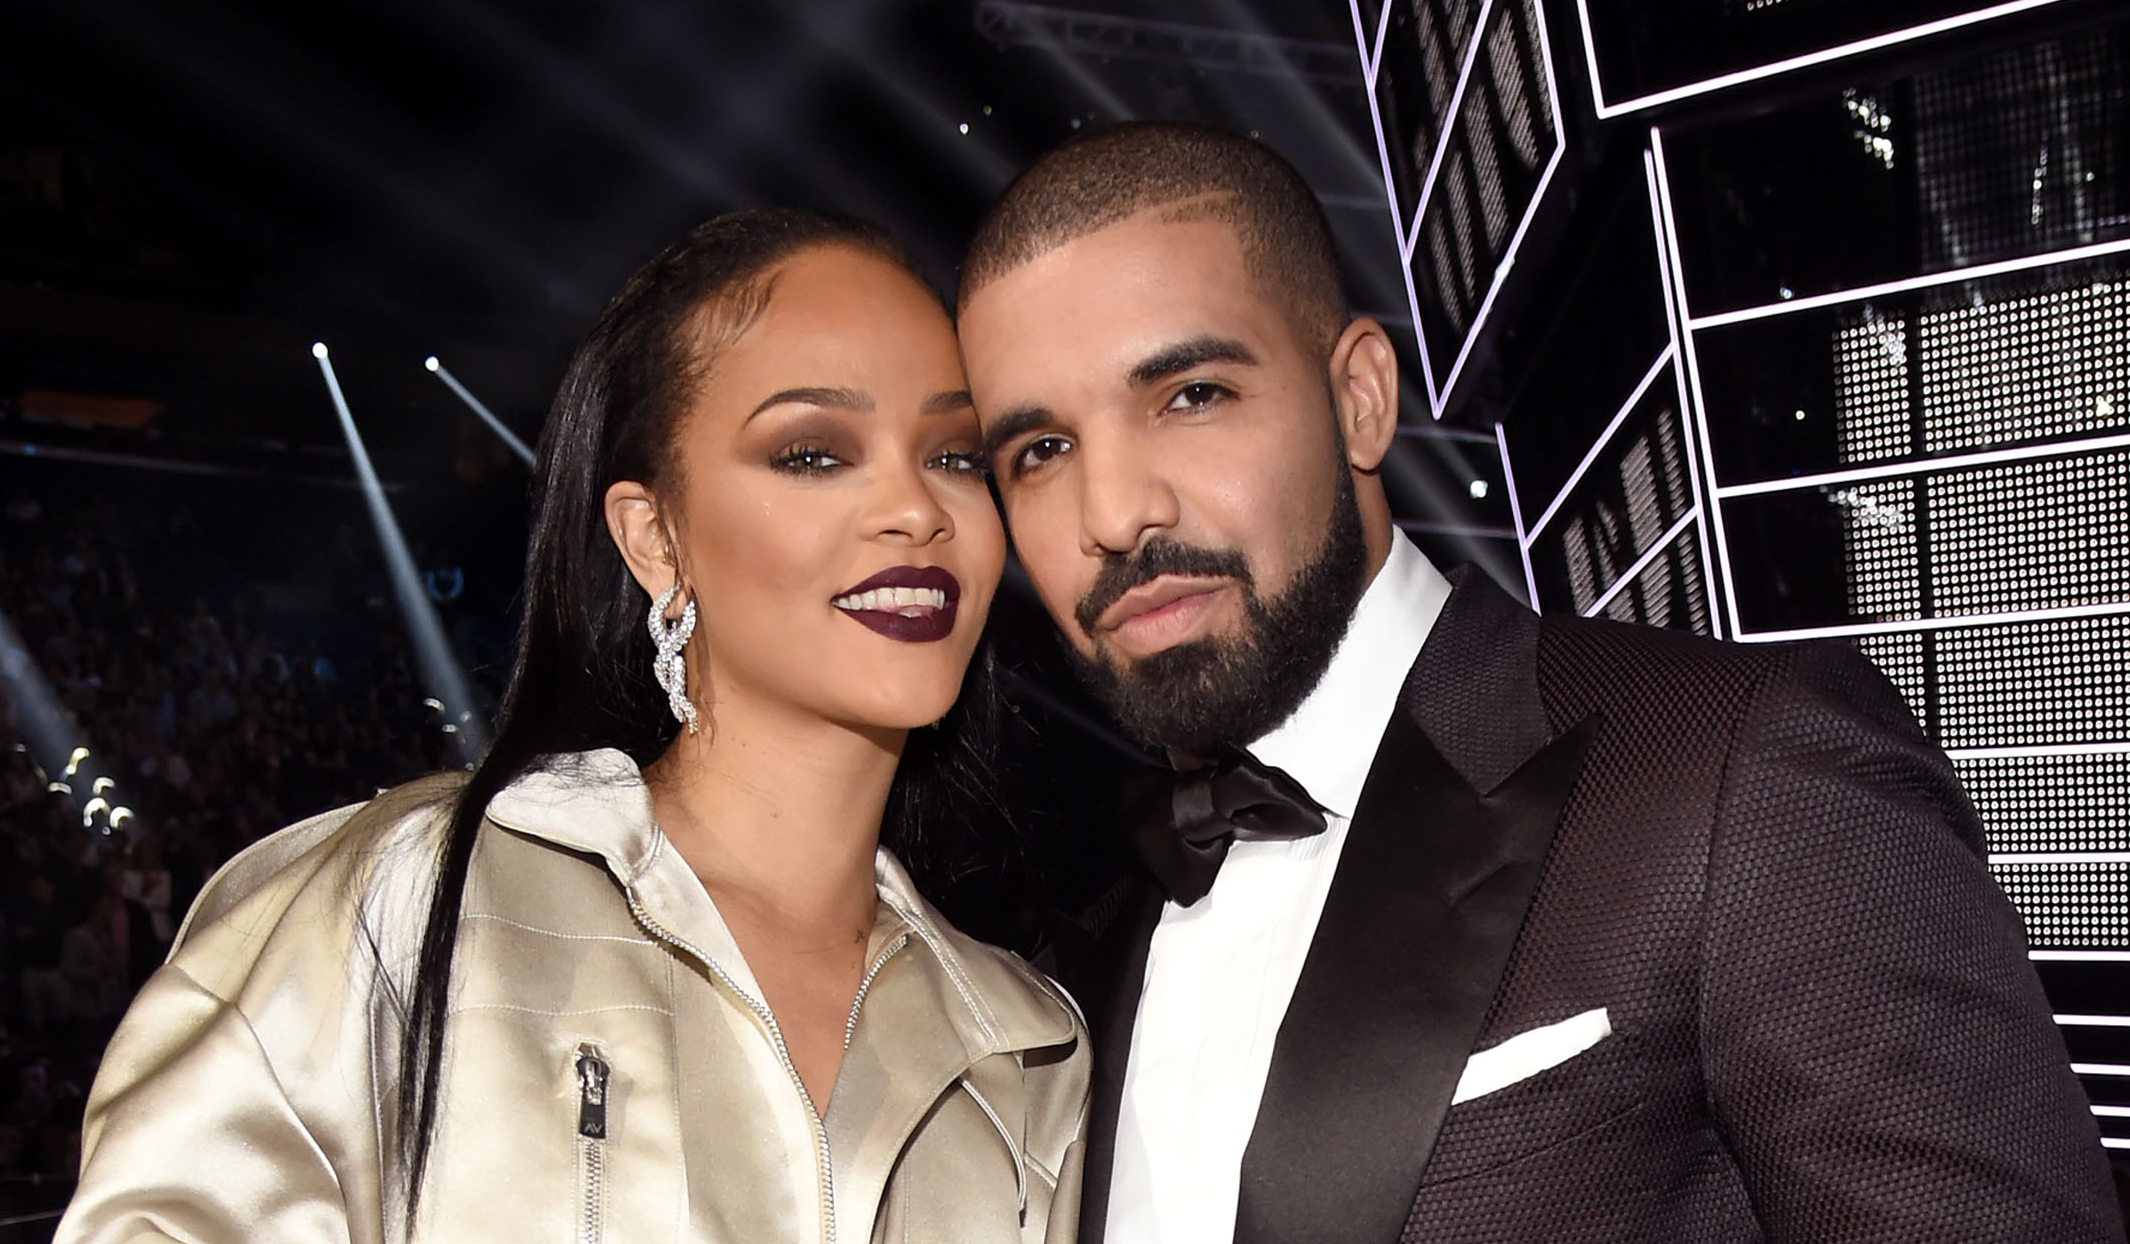 Drake Unfollows Ex Rihanna on Instagram After She Tells Vogue They